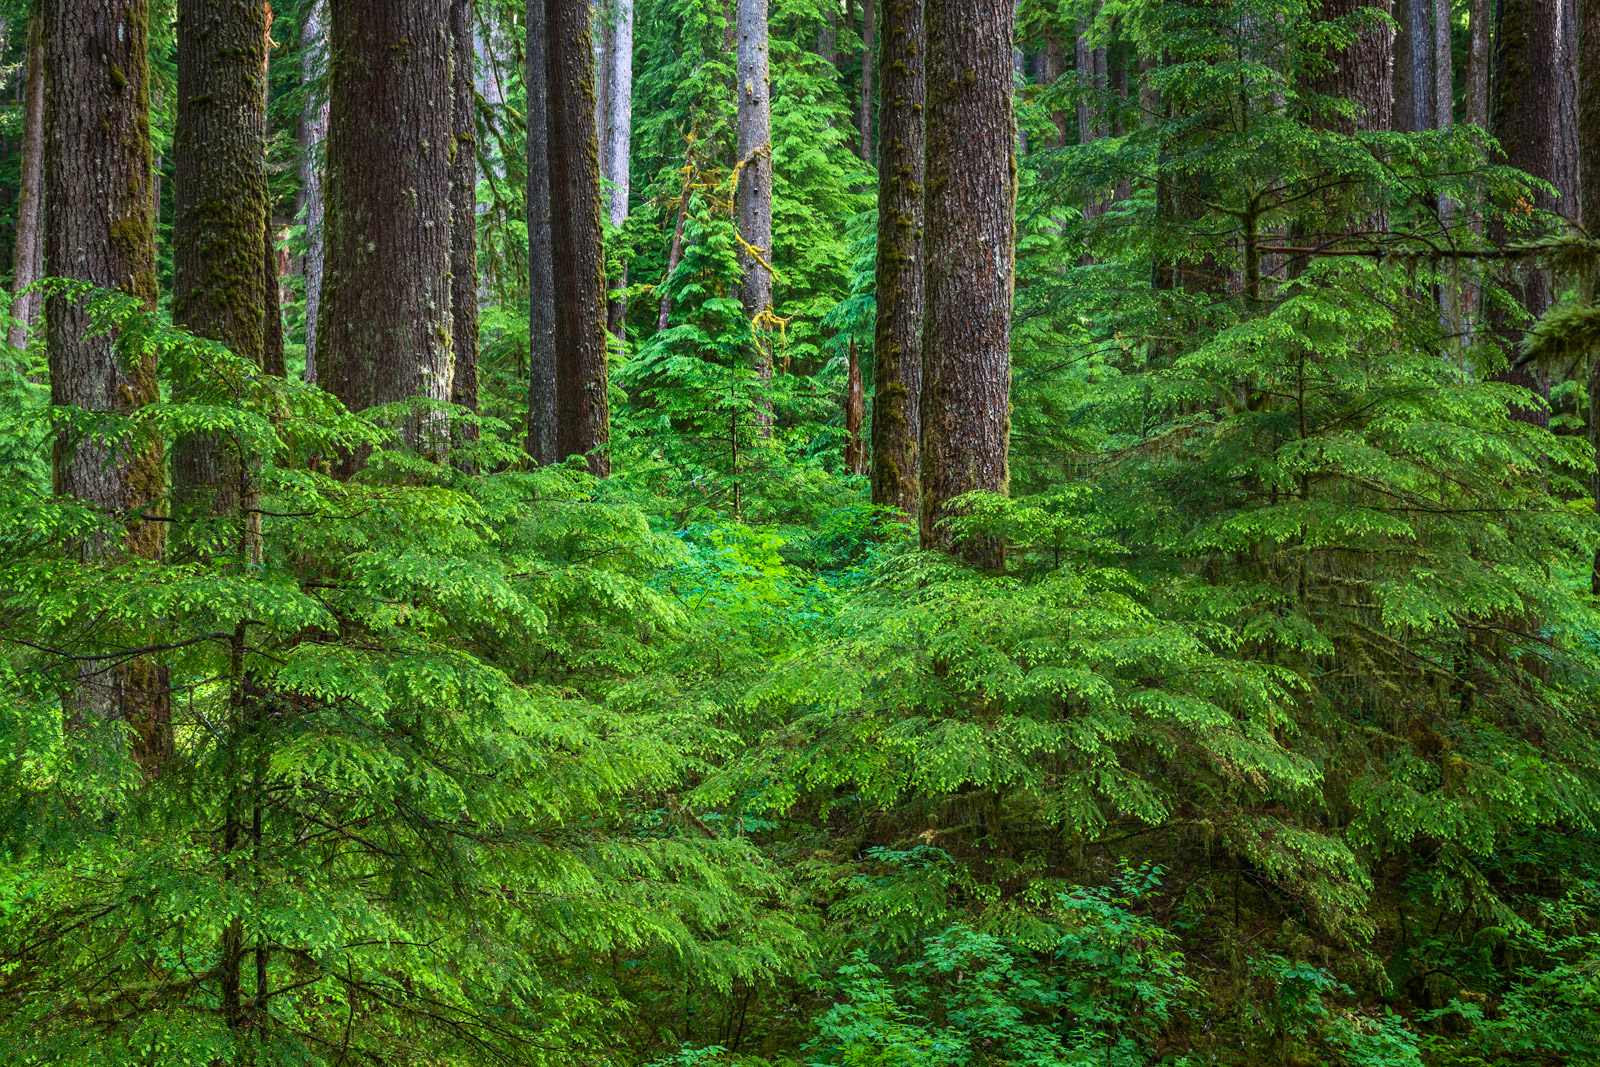 A Limited Edition, Fine Art photograph of trees and other green foliage in the Hoh Rainforest of Olympic National Park, Washington...